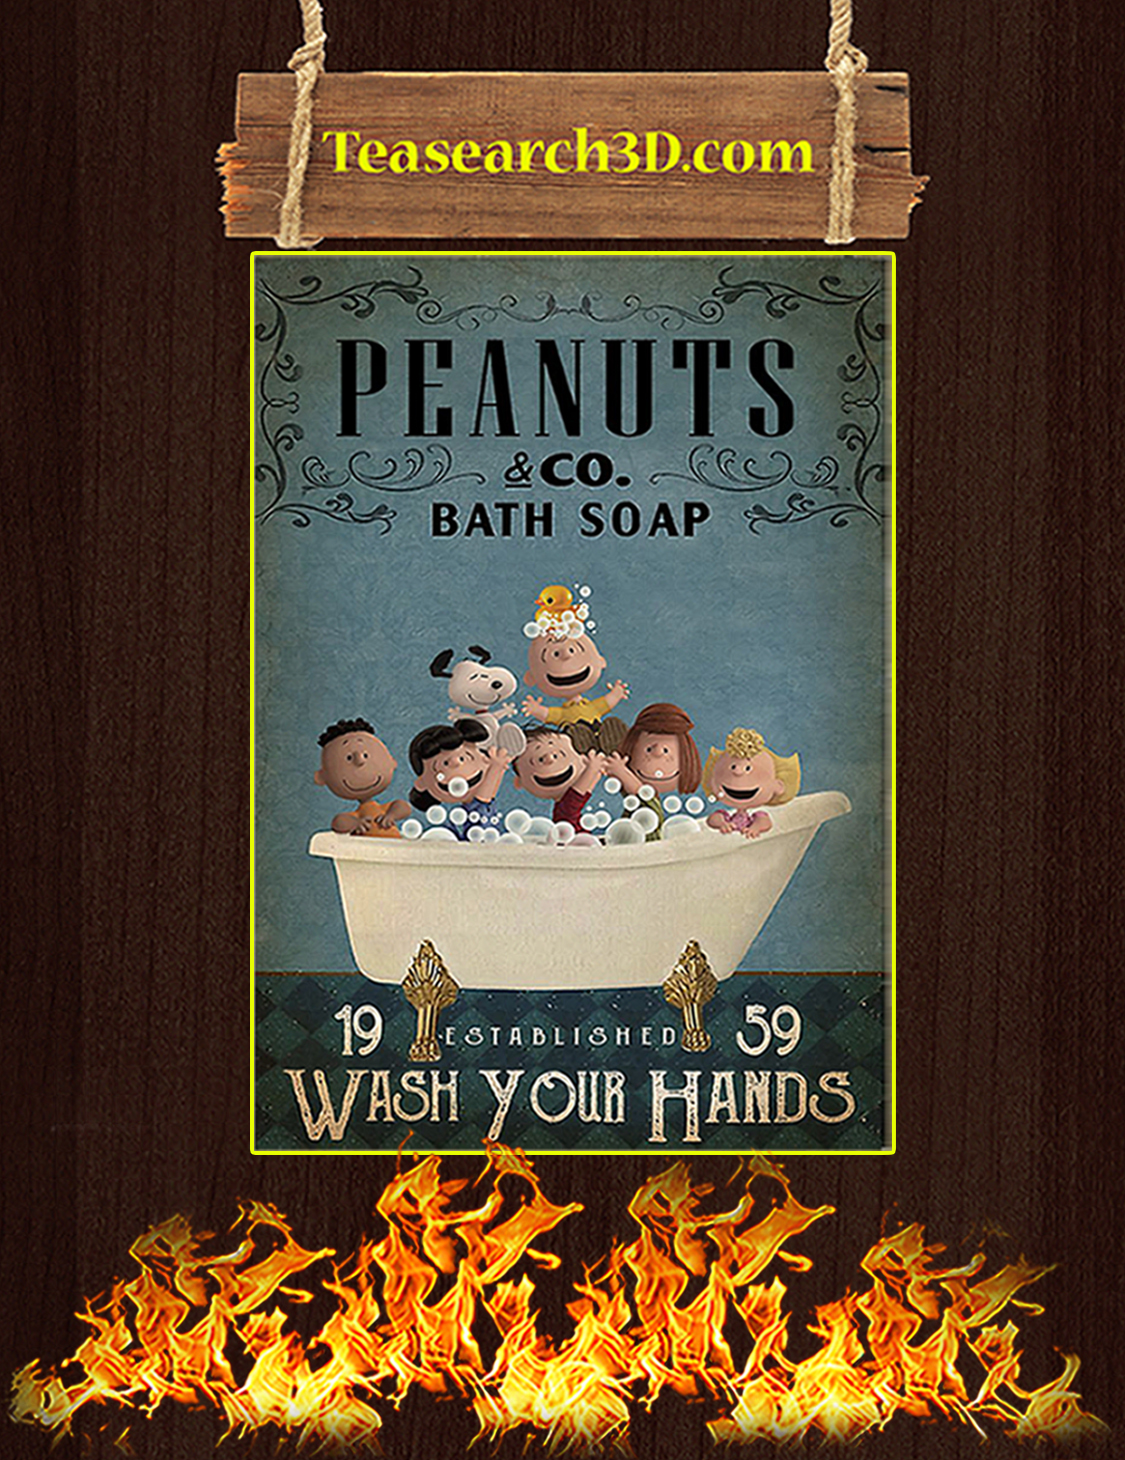 Peanuts co bath soap wash your hands poster A3